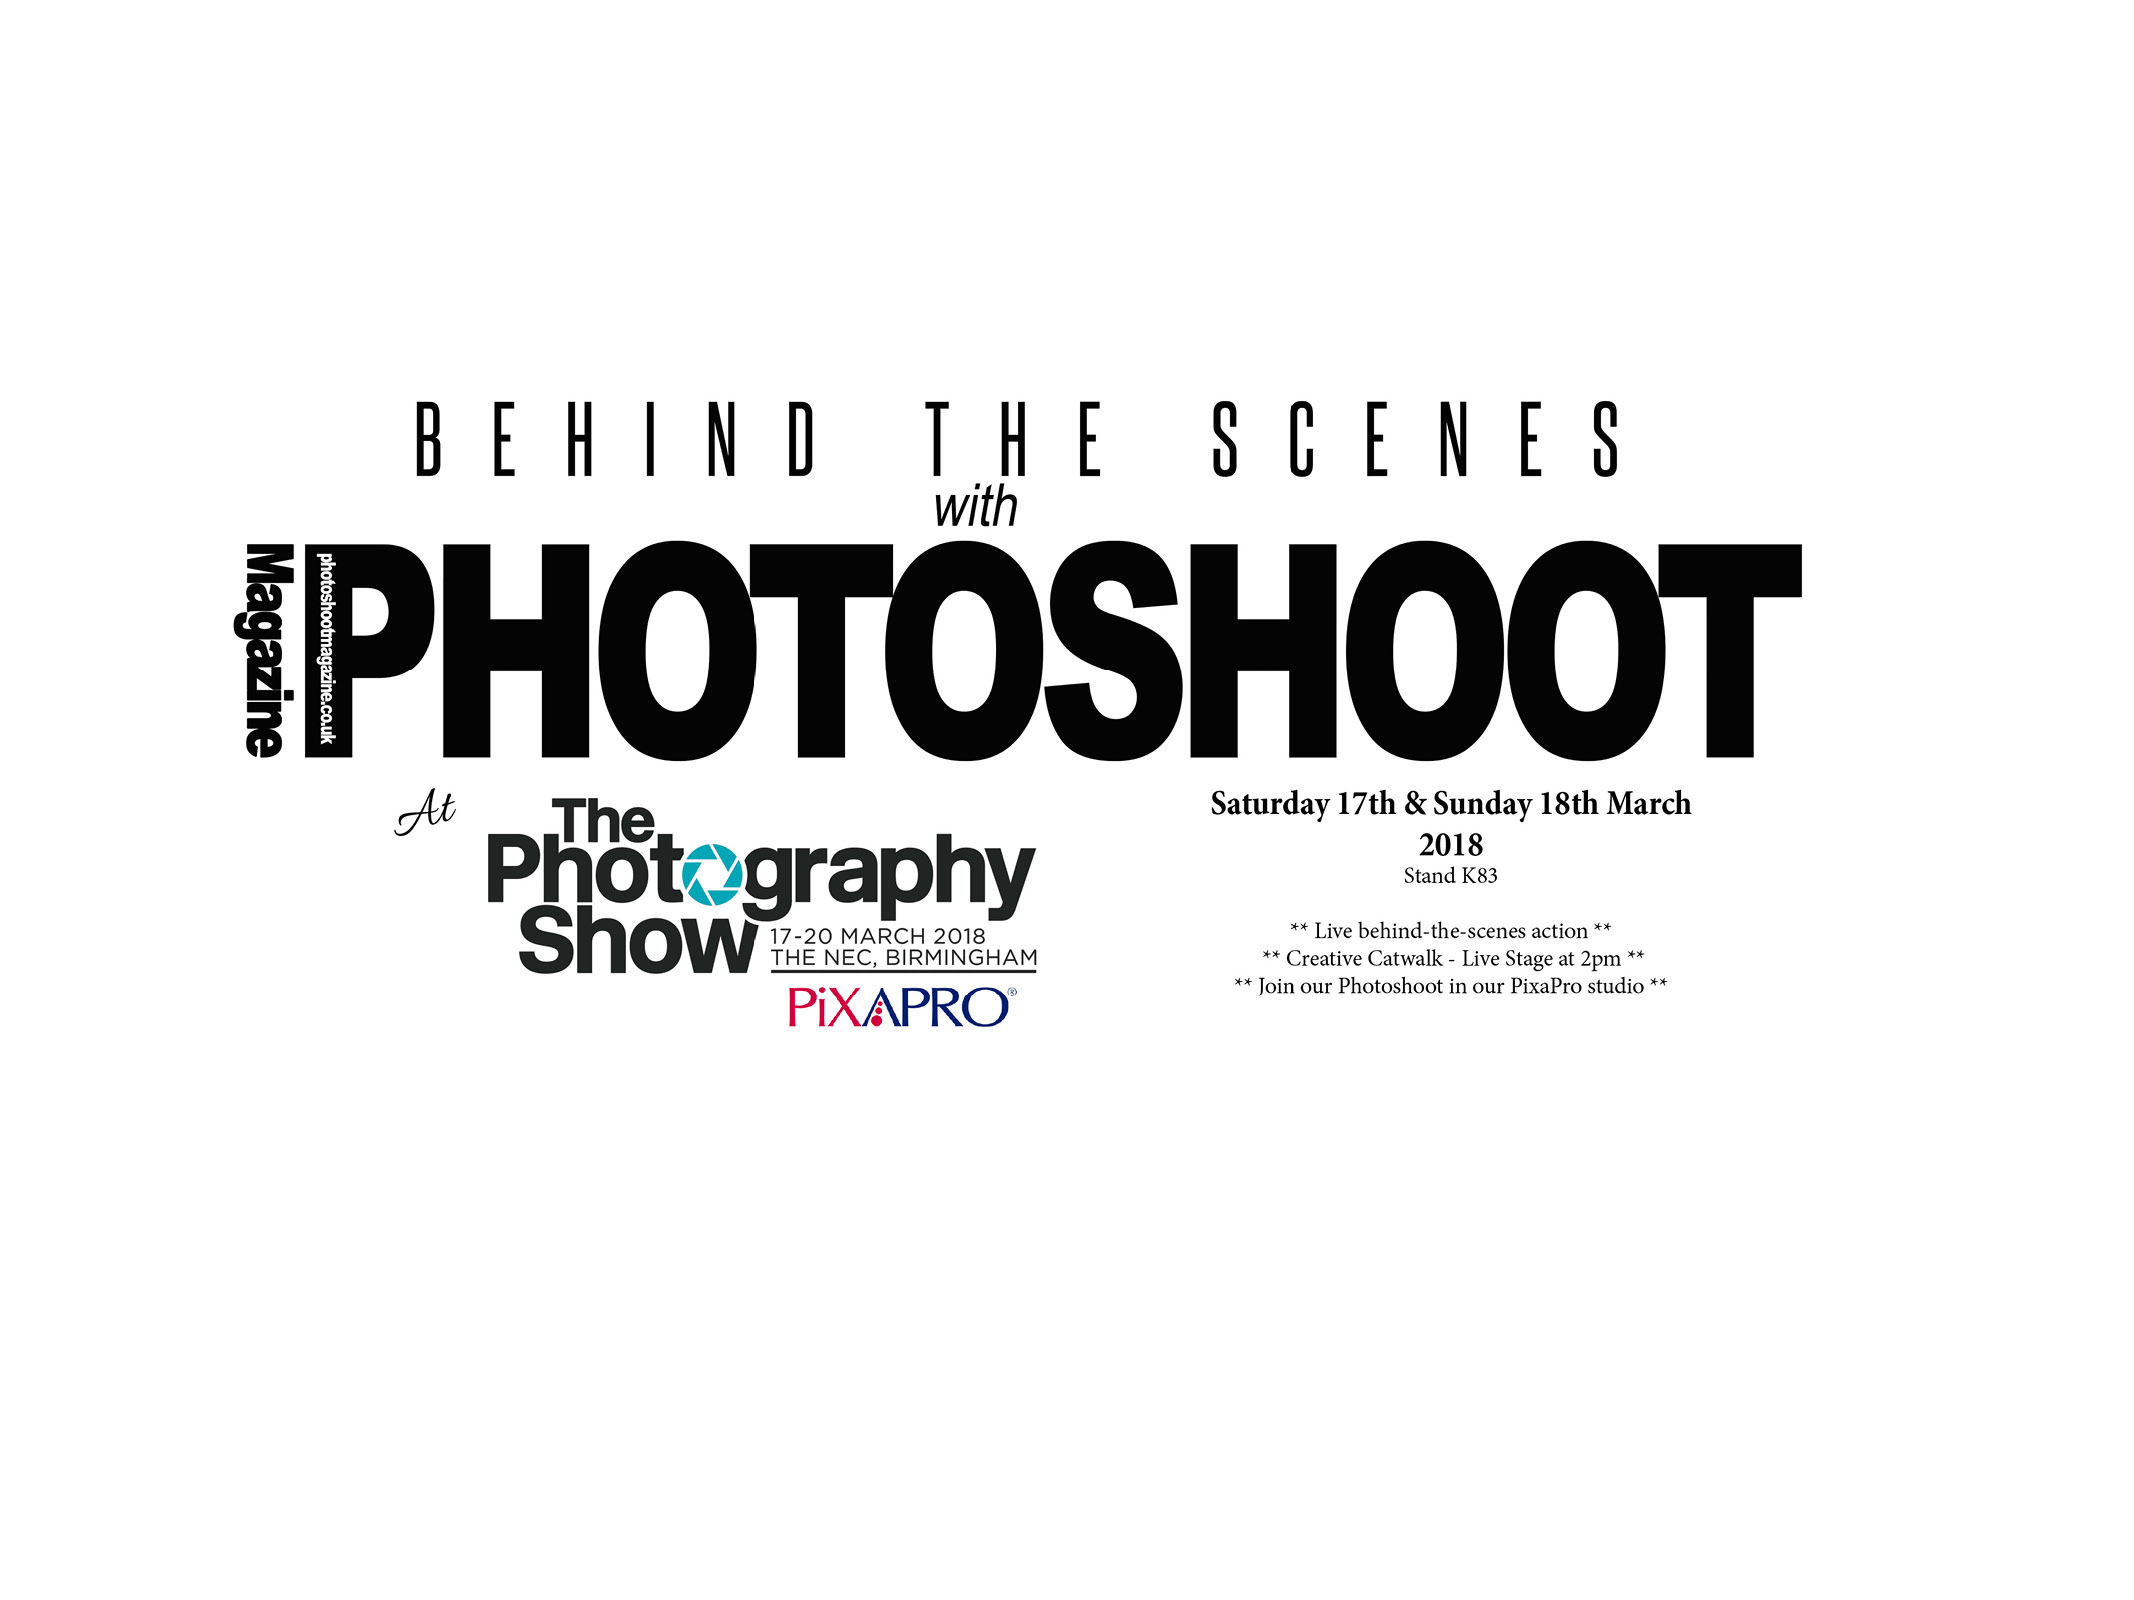 Behind the scenes with PHOTOSHOOT Magazine at The Photography Show 2018